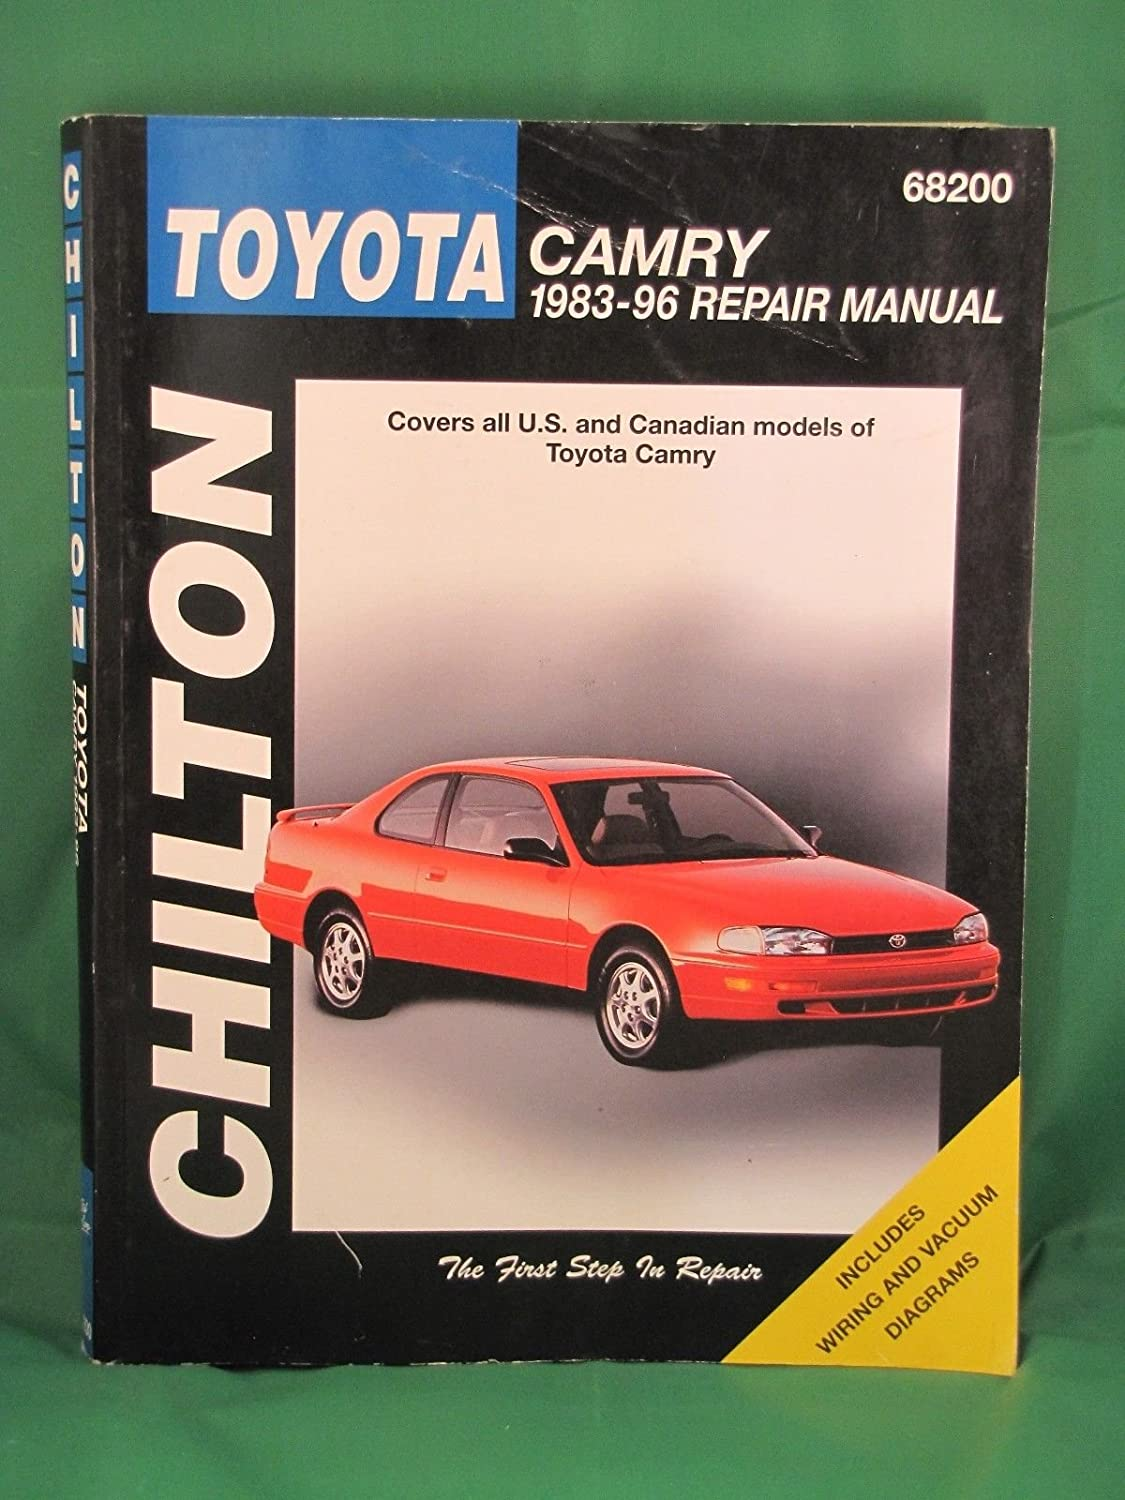 Amazon.com : 1983-96 Chilton Repair Manual - Toyota Camry - #68200 :  Everything Else